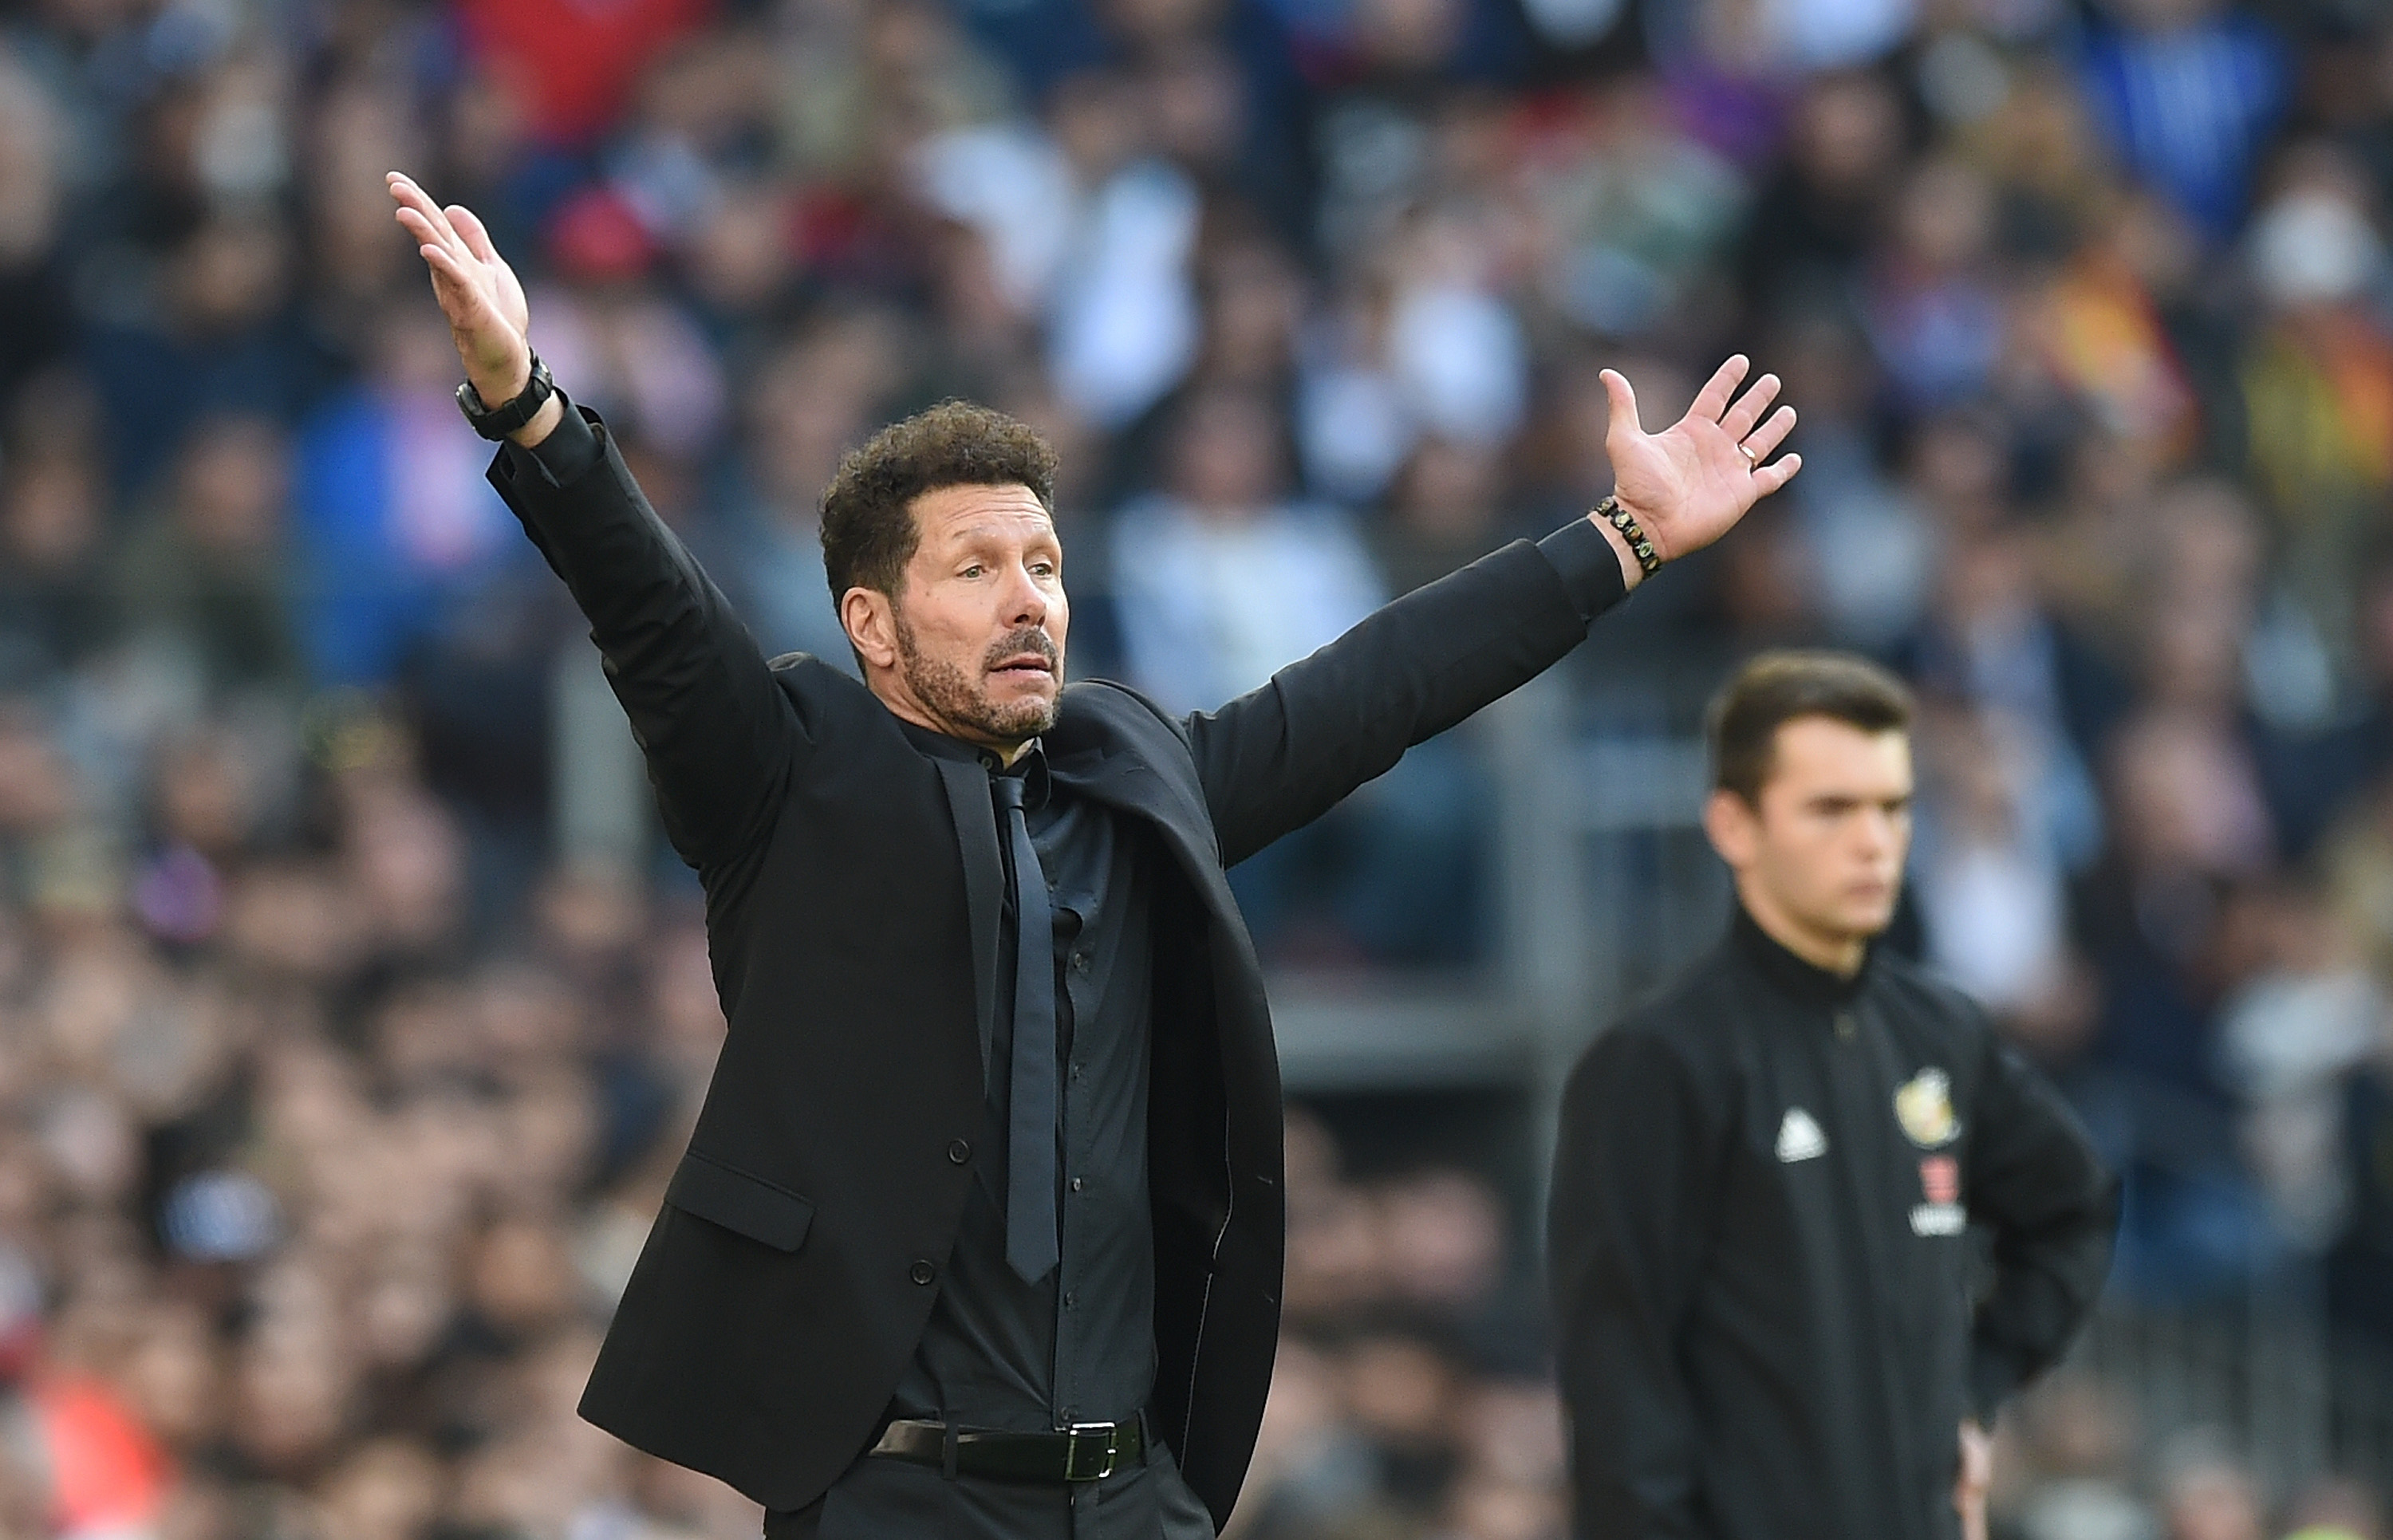 Simeone is under pressure to turn things around (Photo by Denis Doyle/Getty Images)